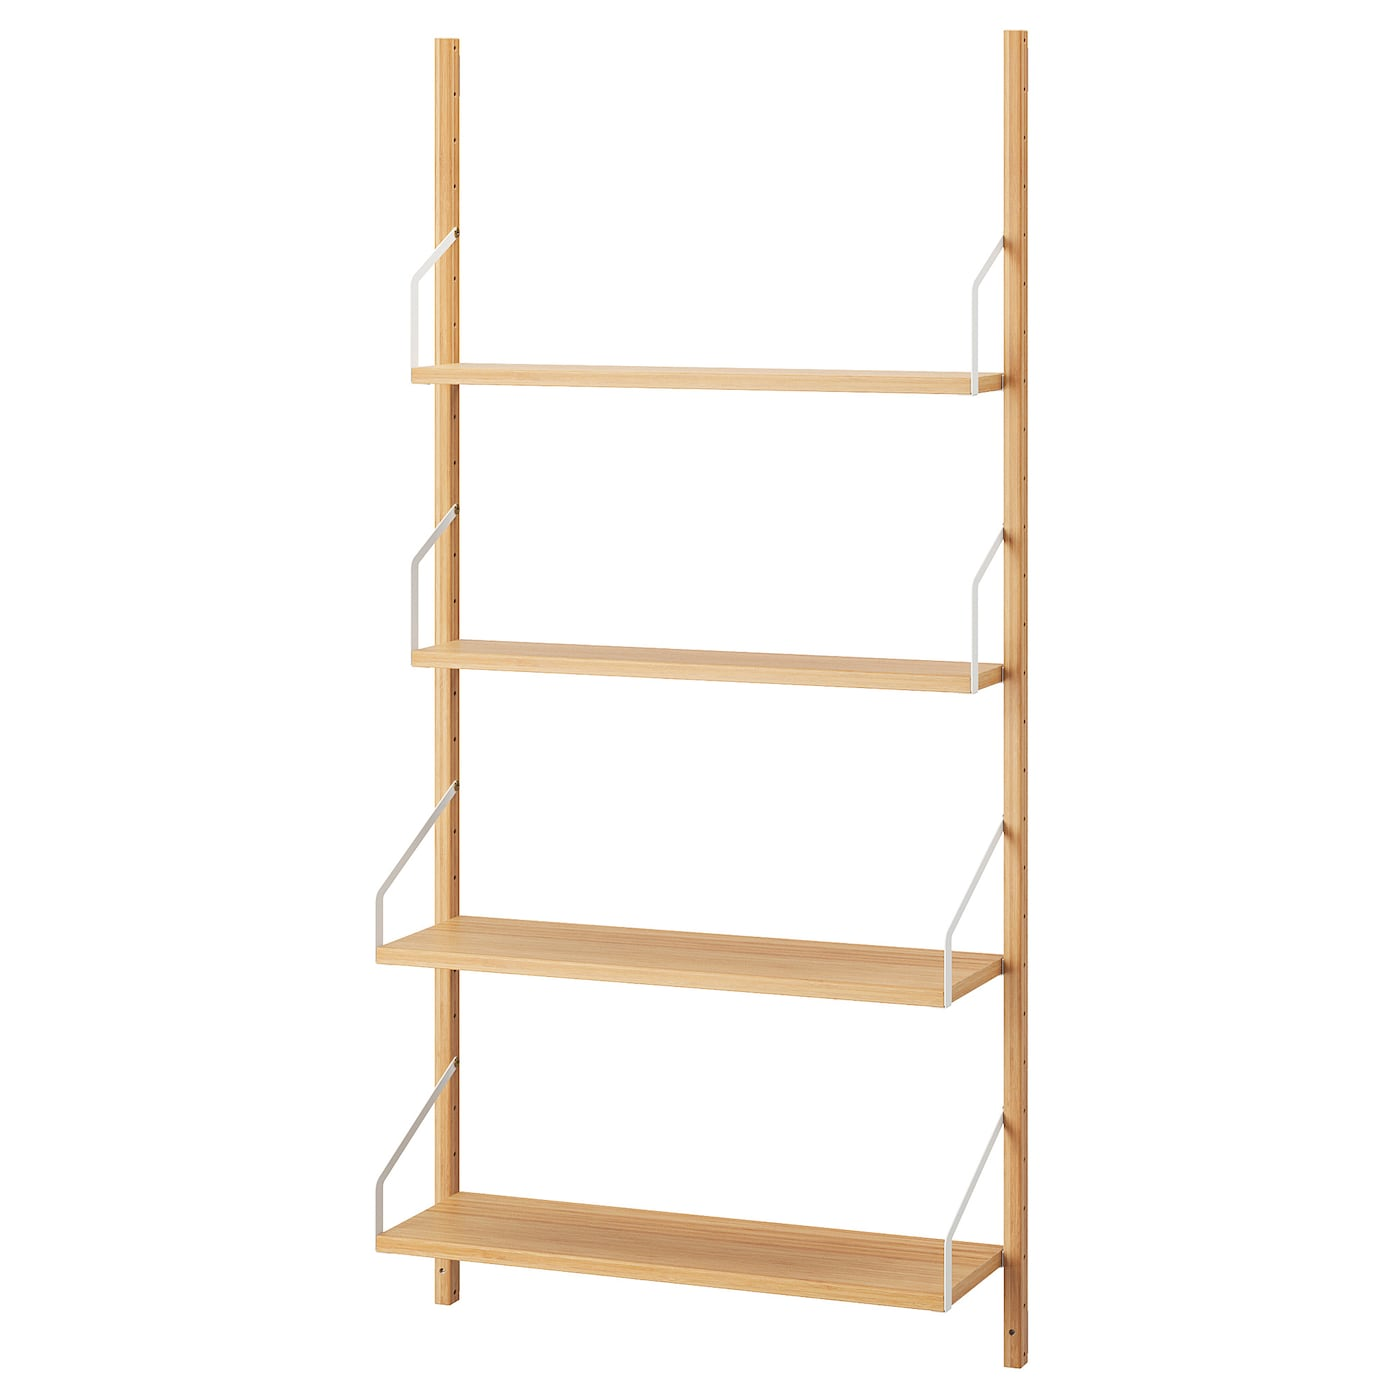 shelving units shelving systems ikea rh ikea com ikea metal shelves kitchen